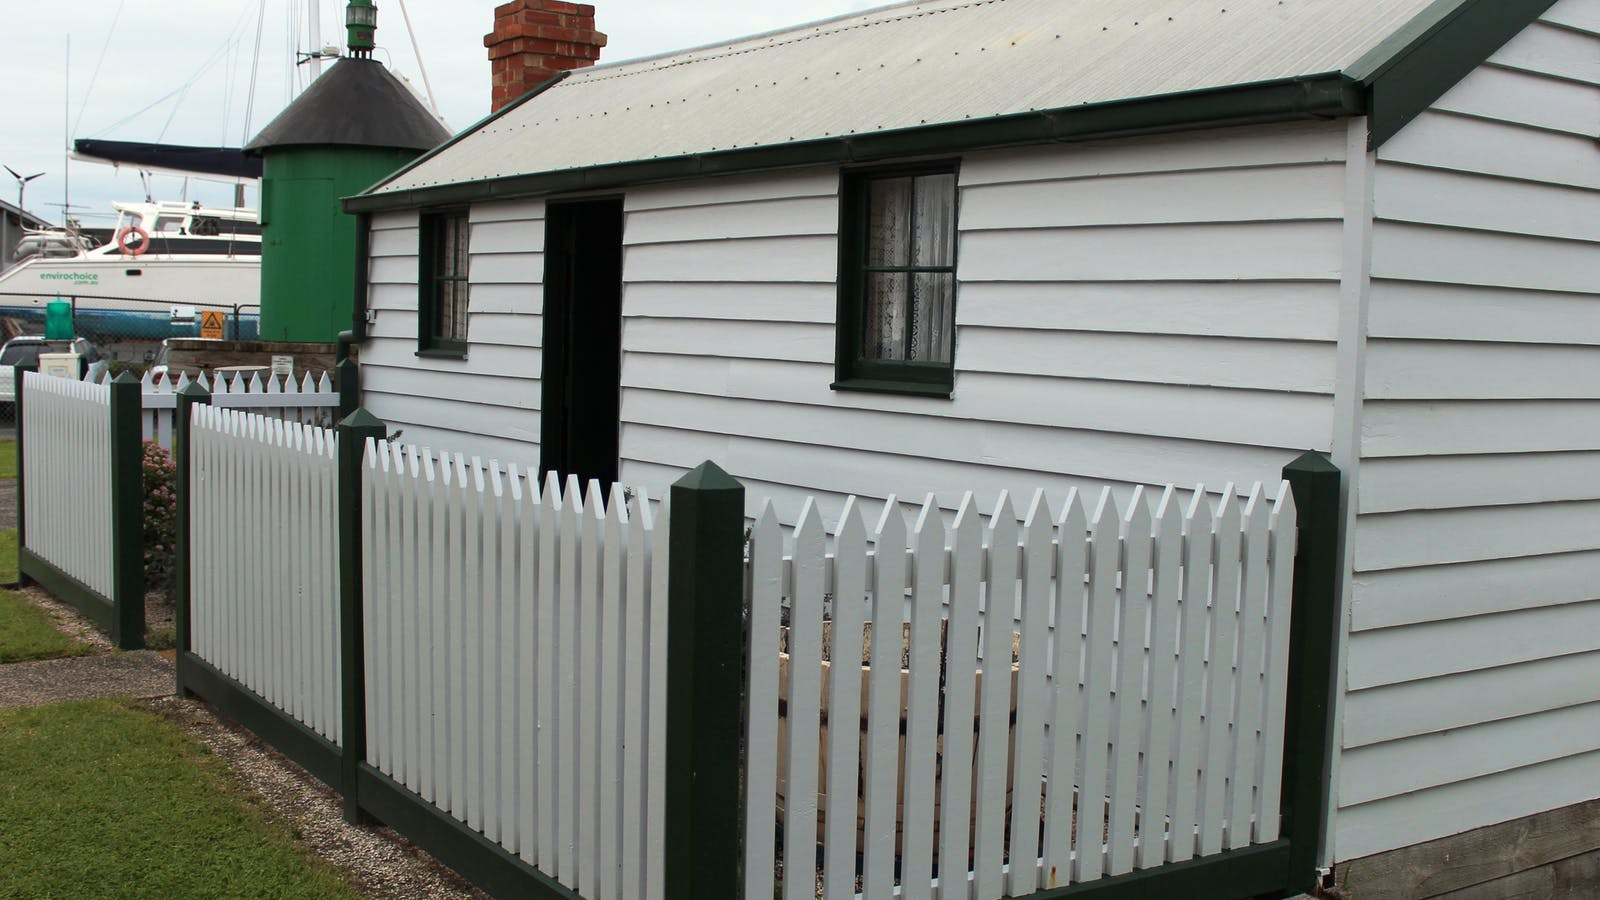 Original cottage in museum grounds.